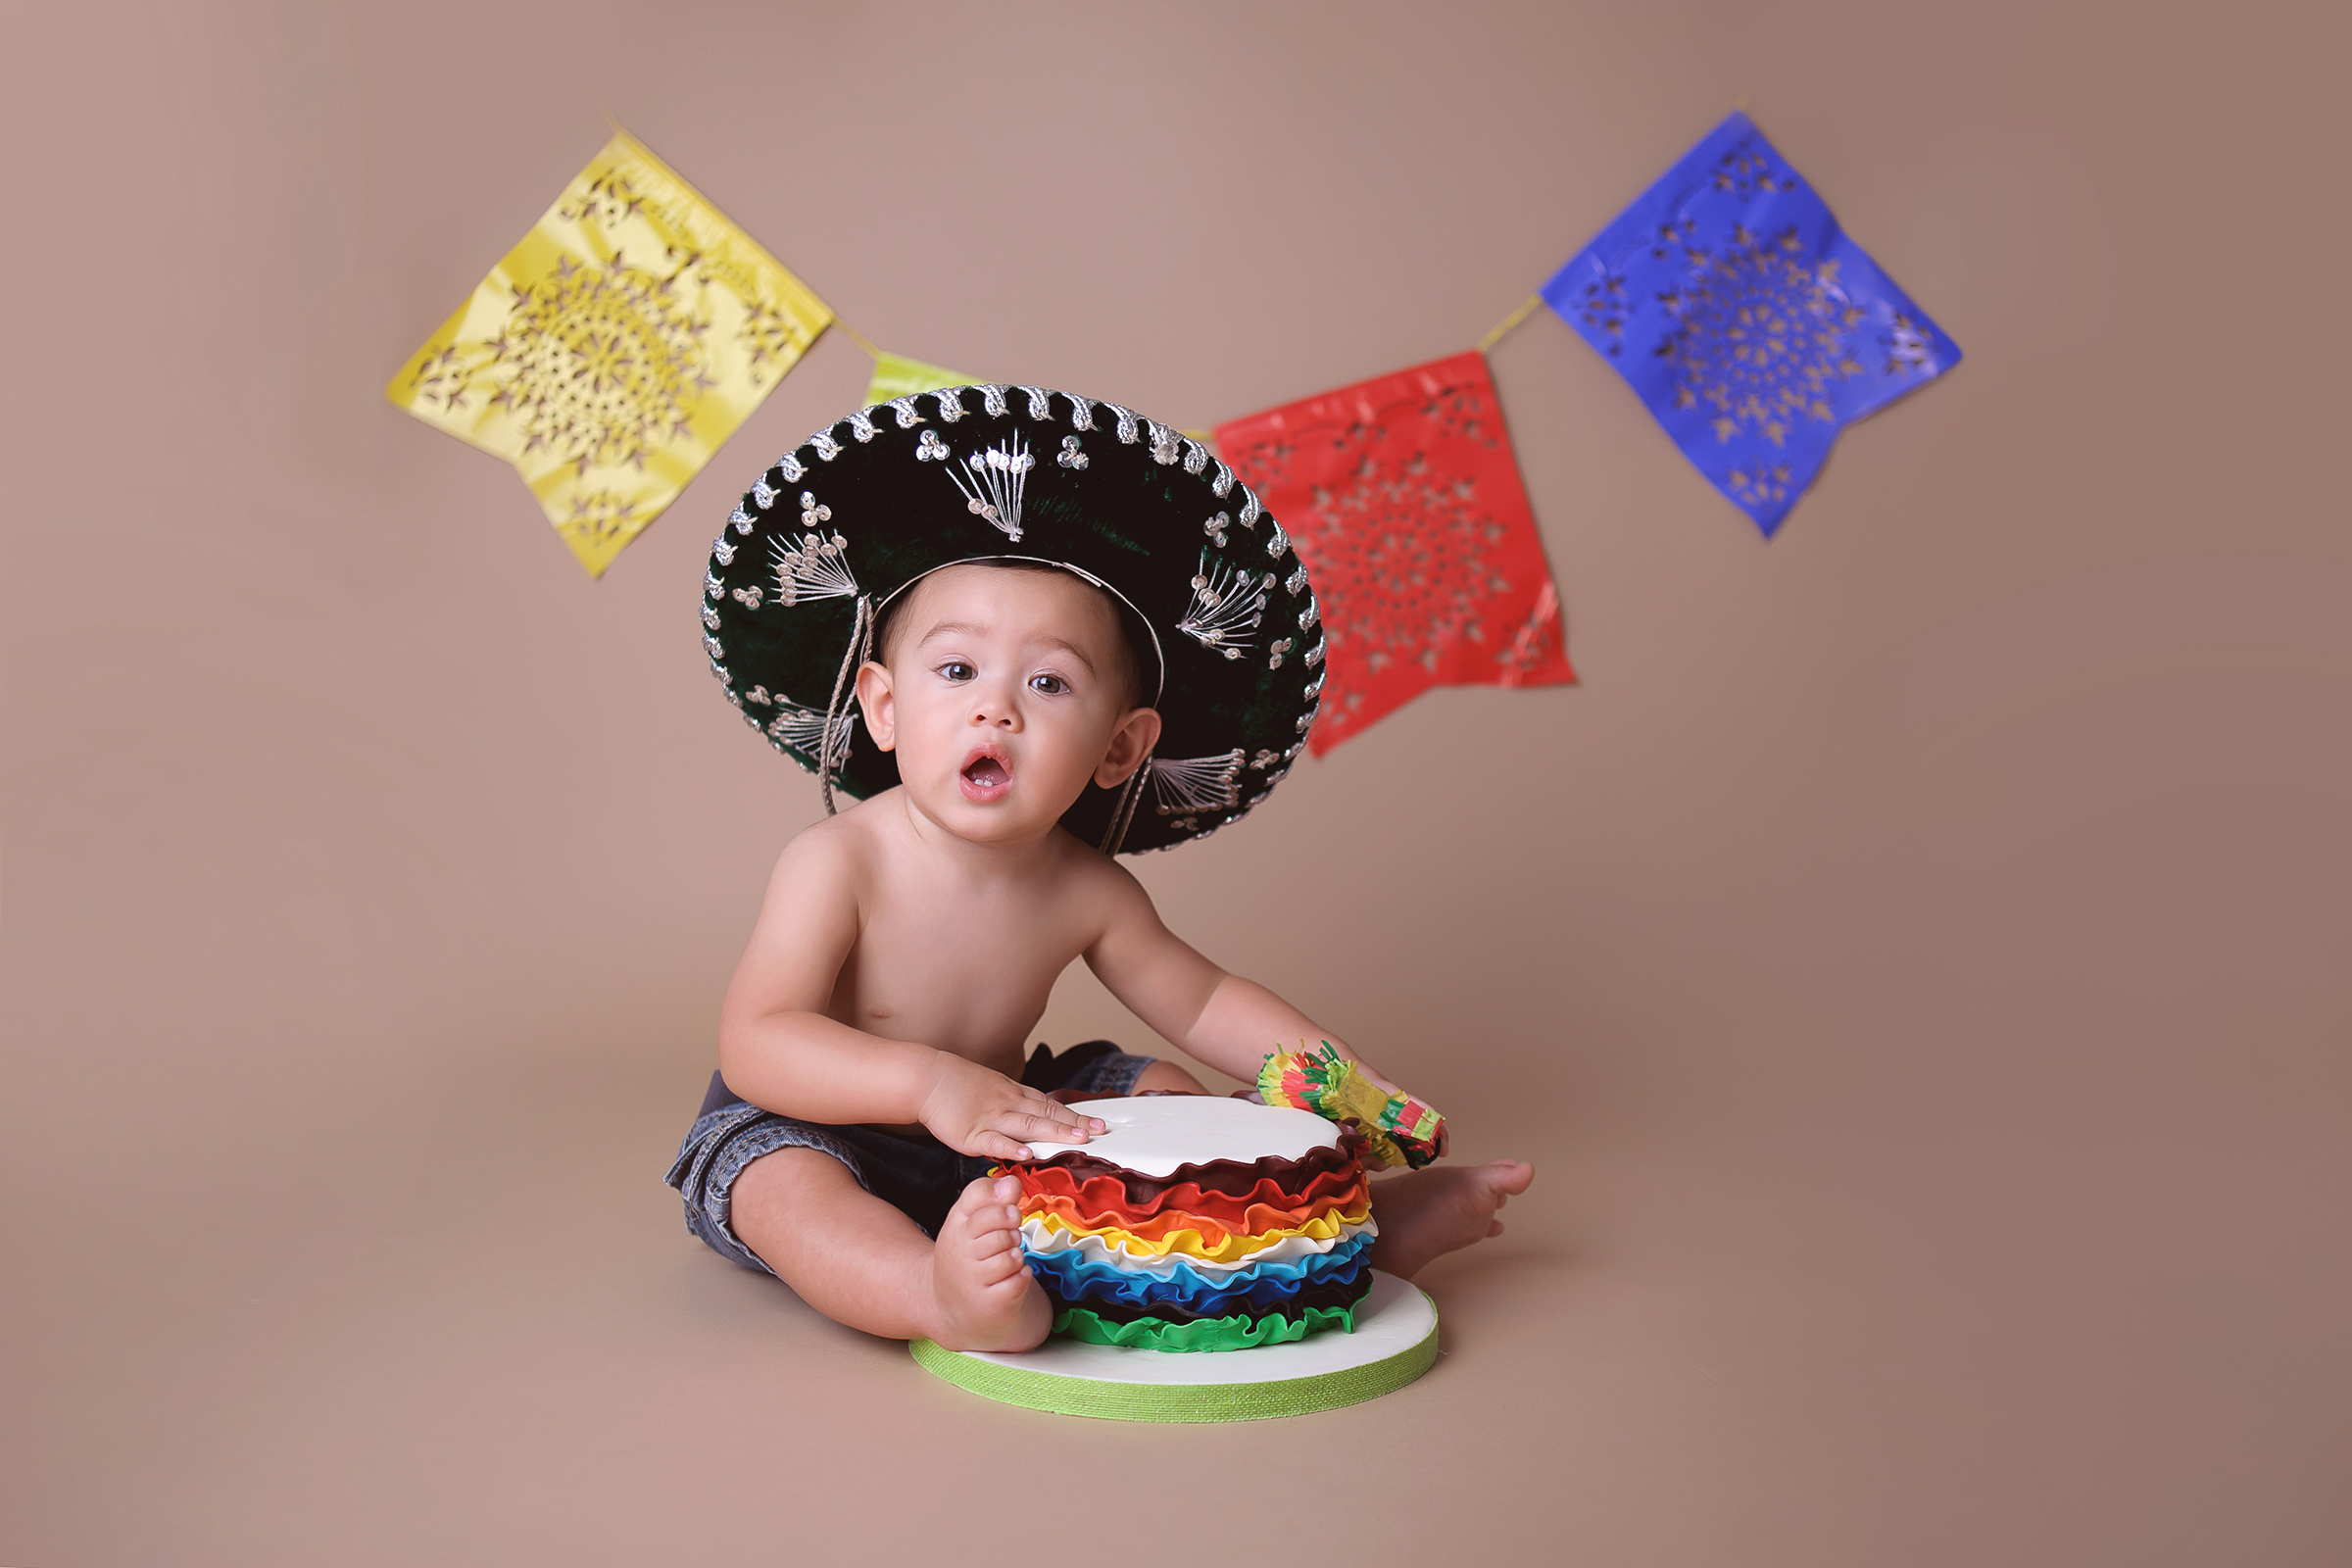 mexican theme cake smash photo with sombrero and pinata cake topper San Diego